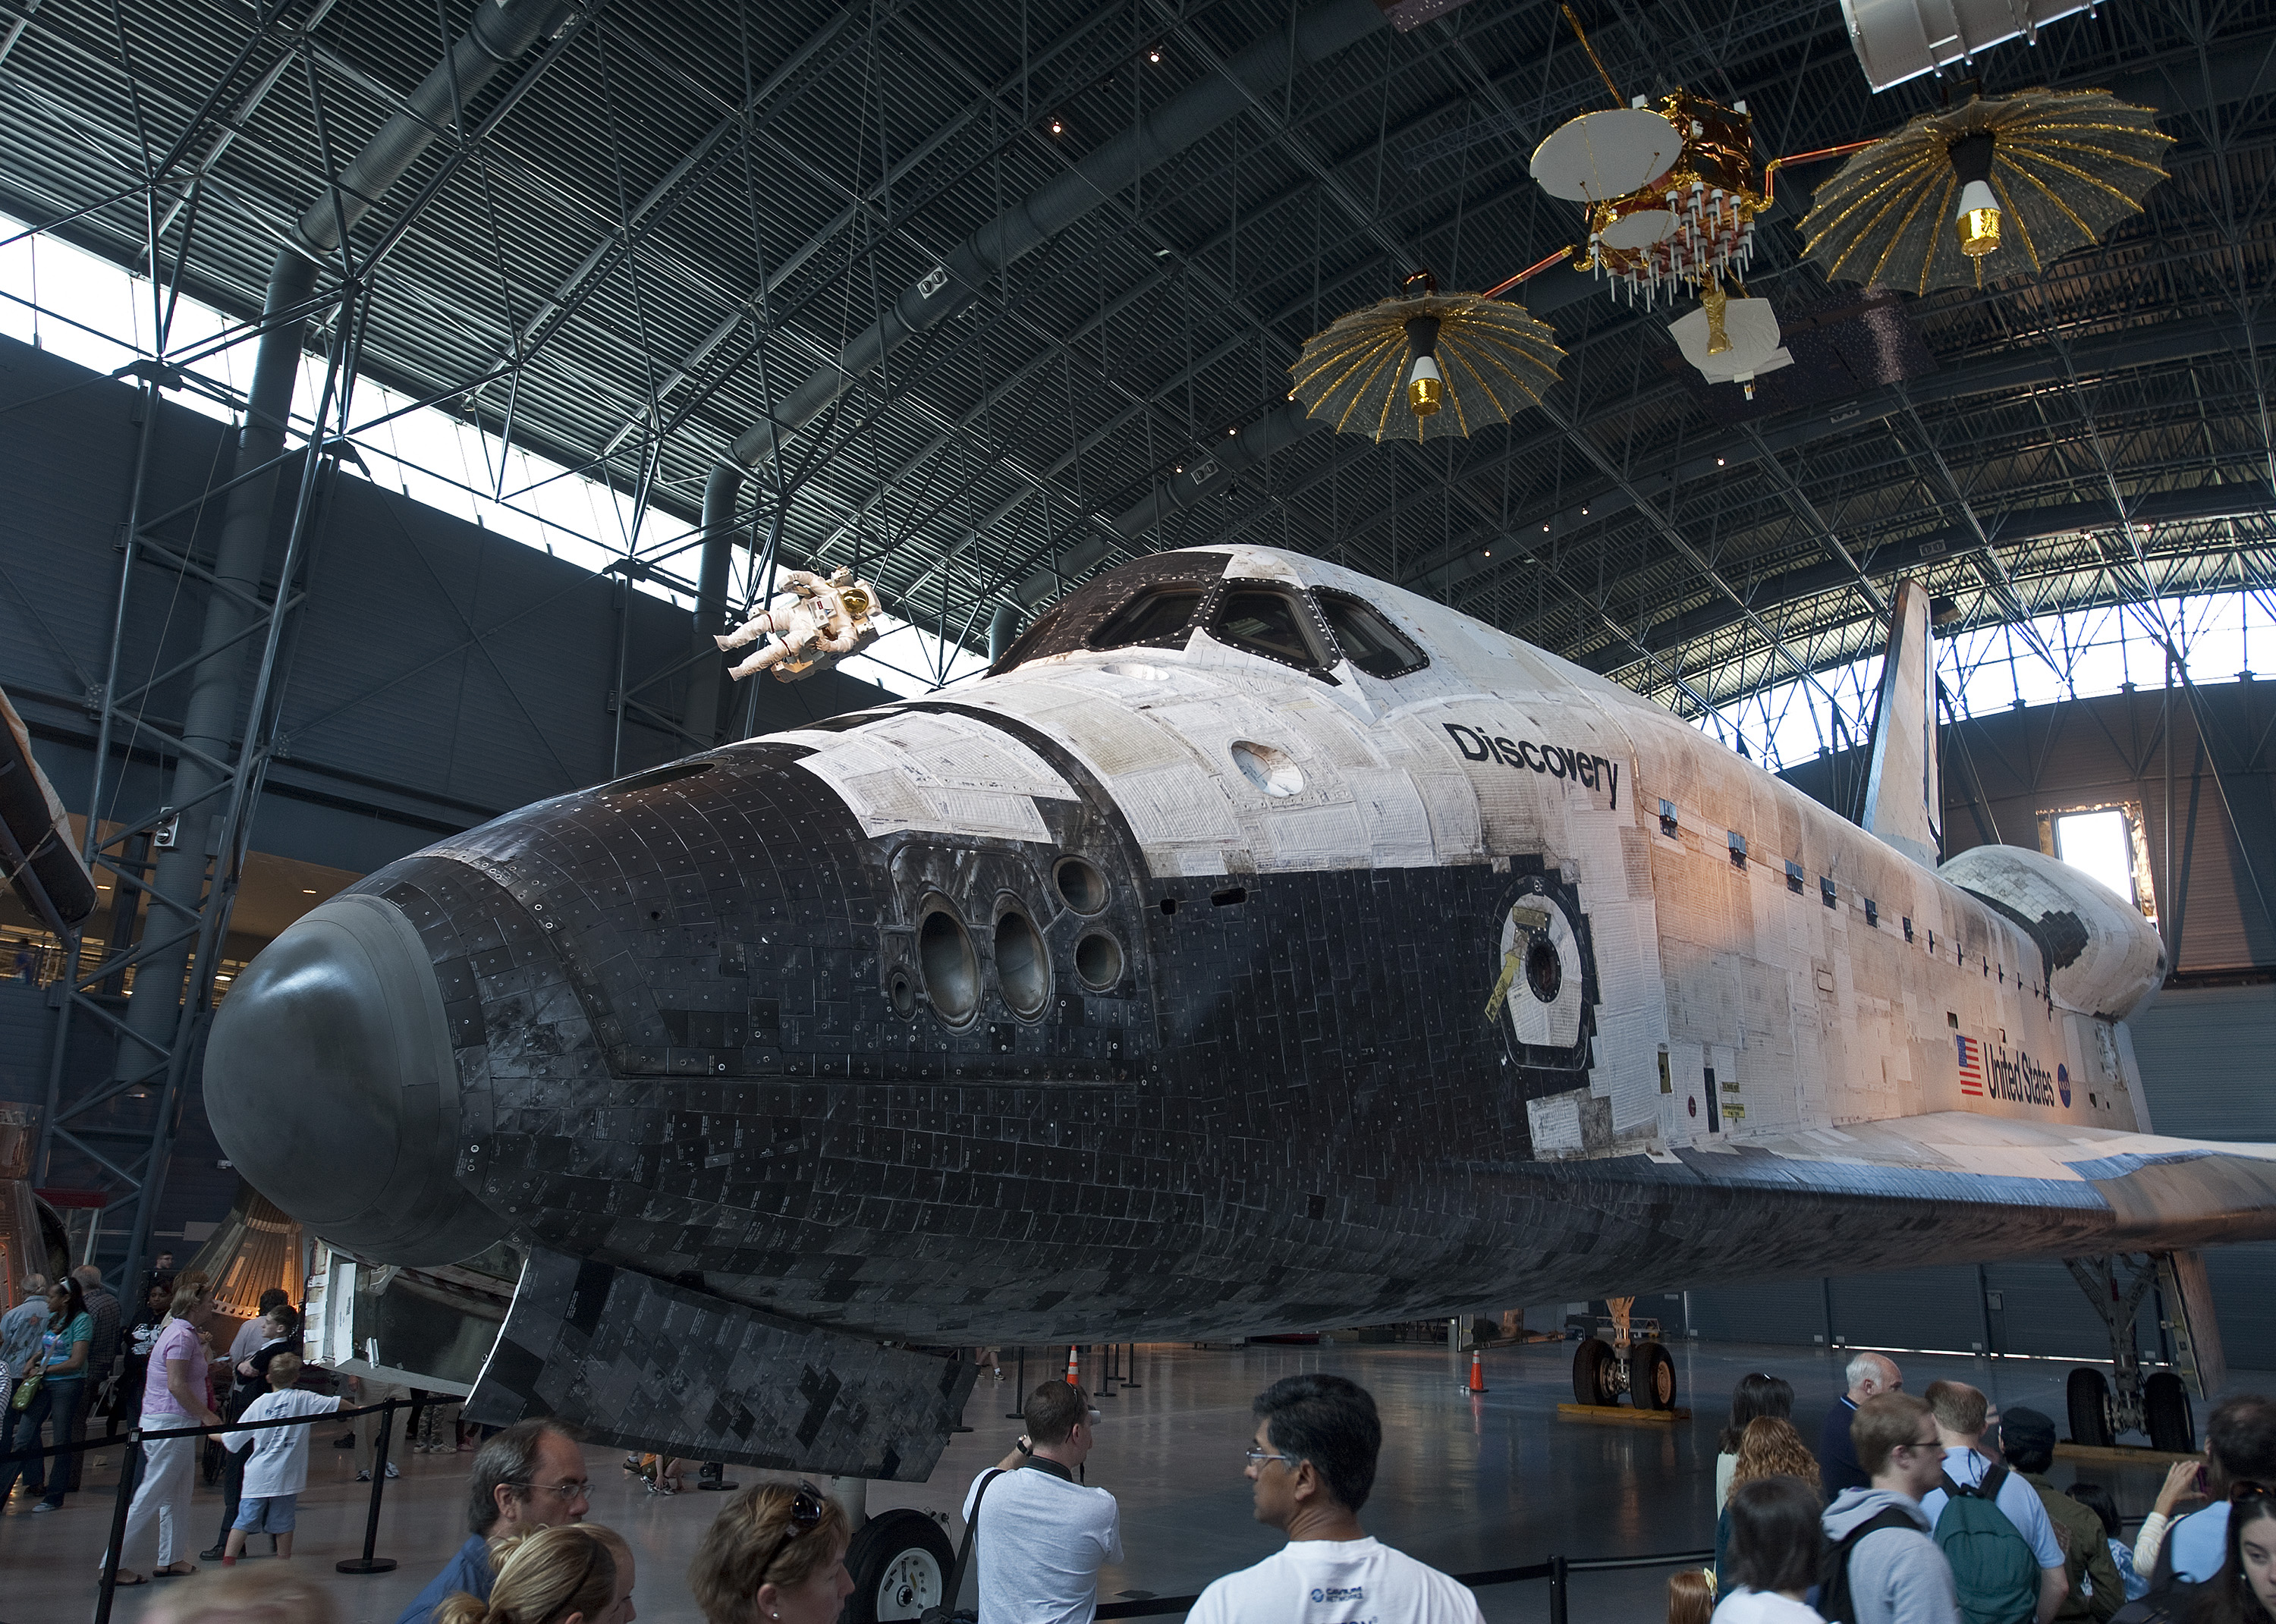 space shuttle discovery - photo #27